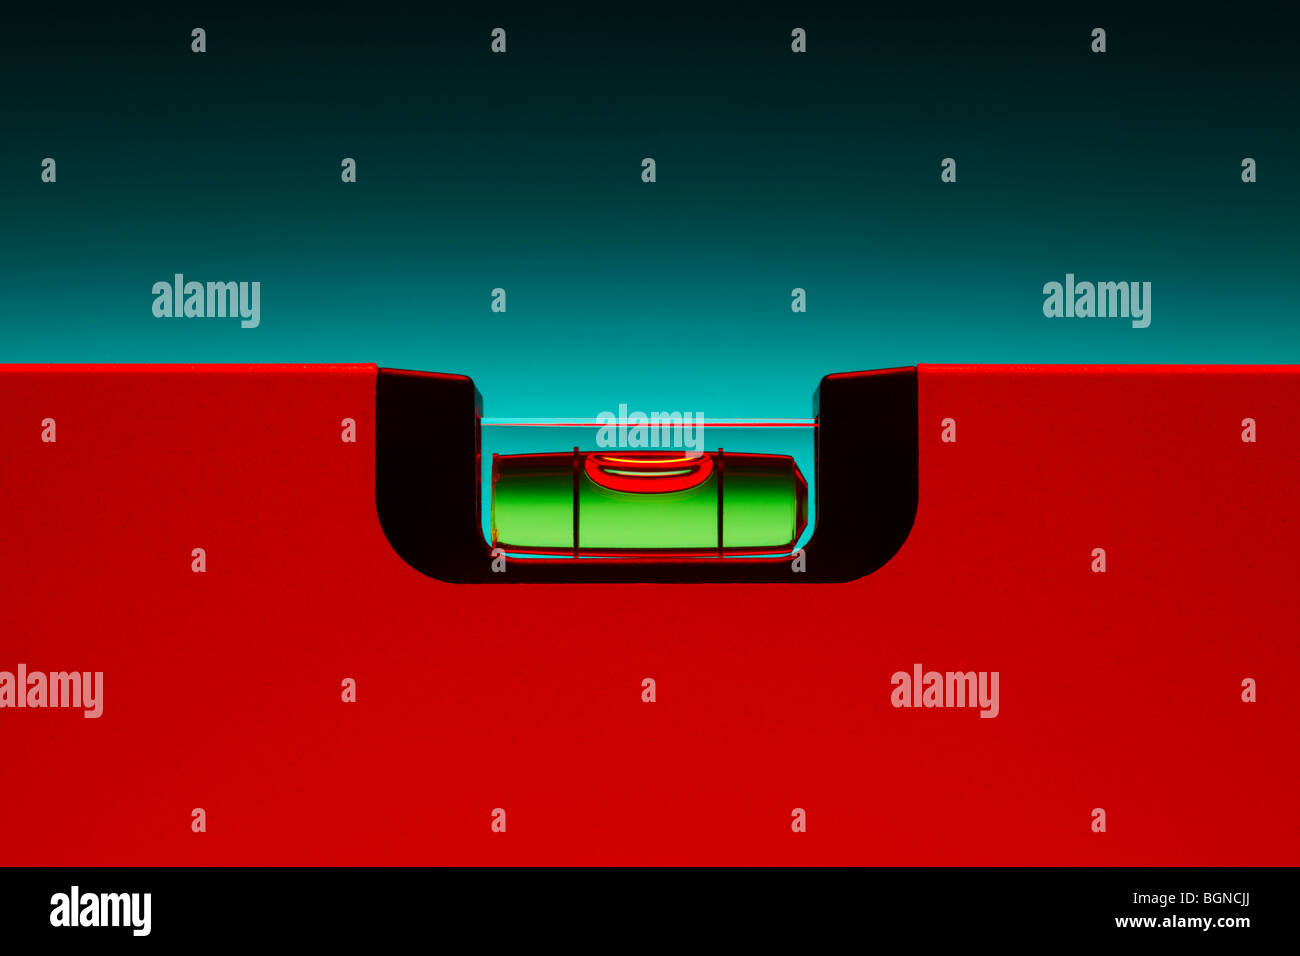 Red Spirit Level - Stock Image